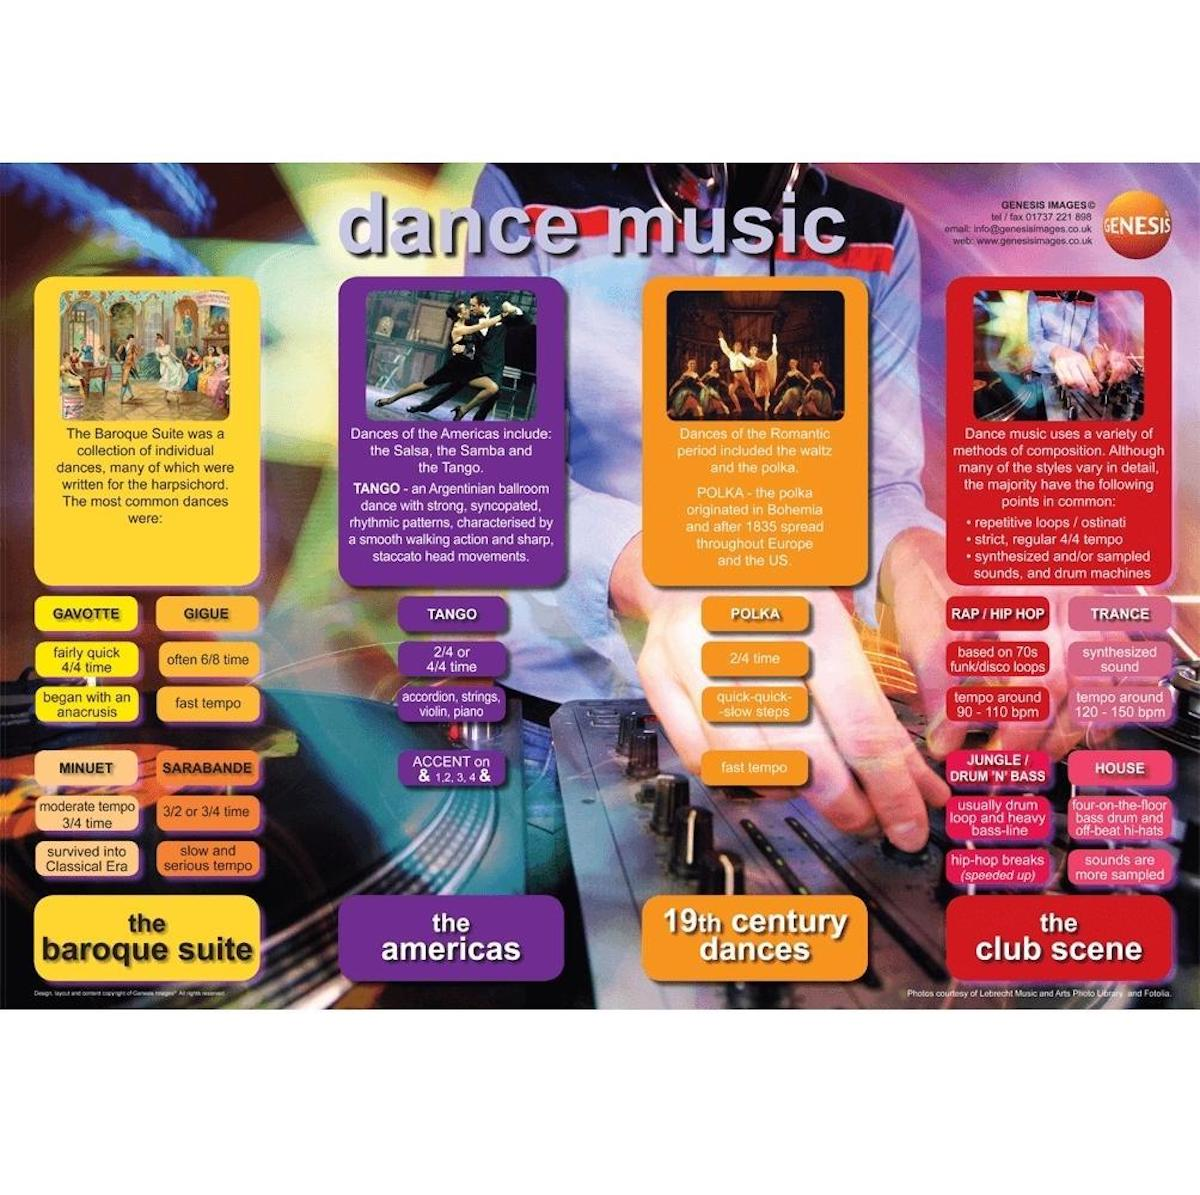 Dance Music - A1 wall poster